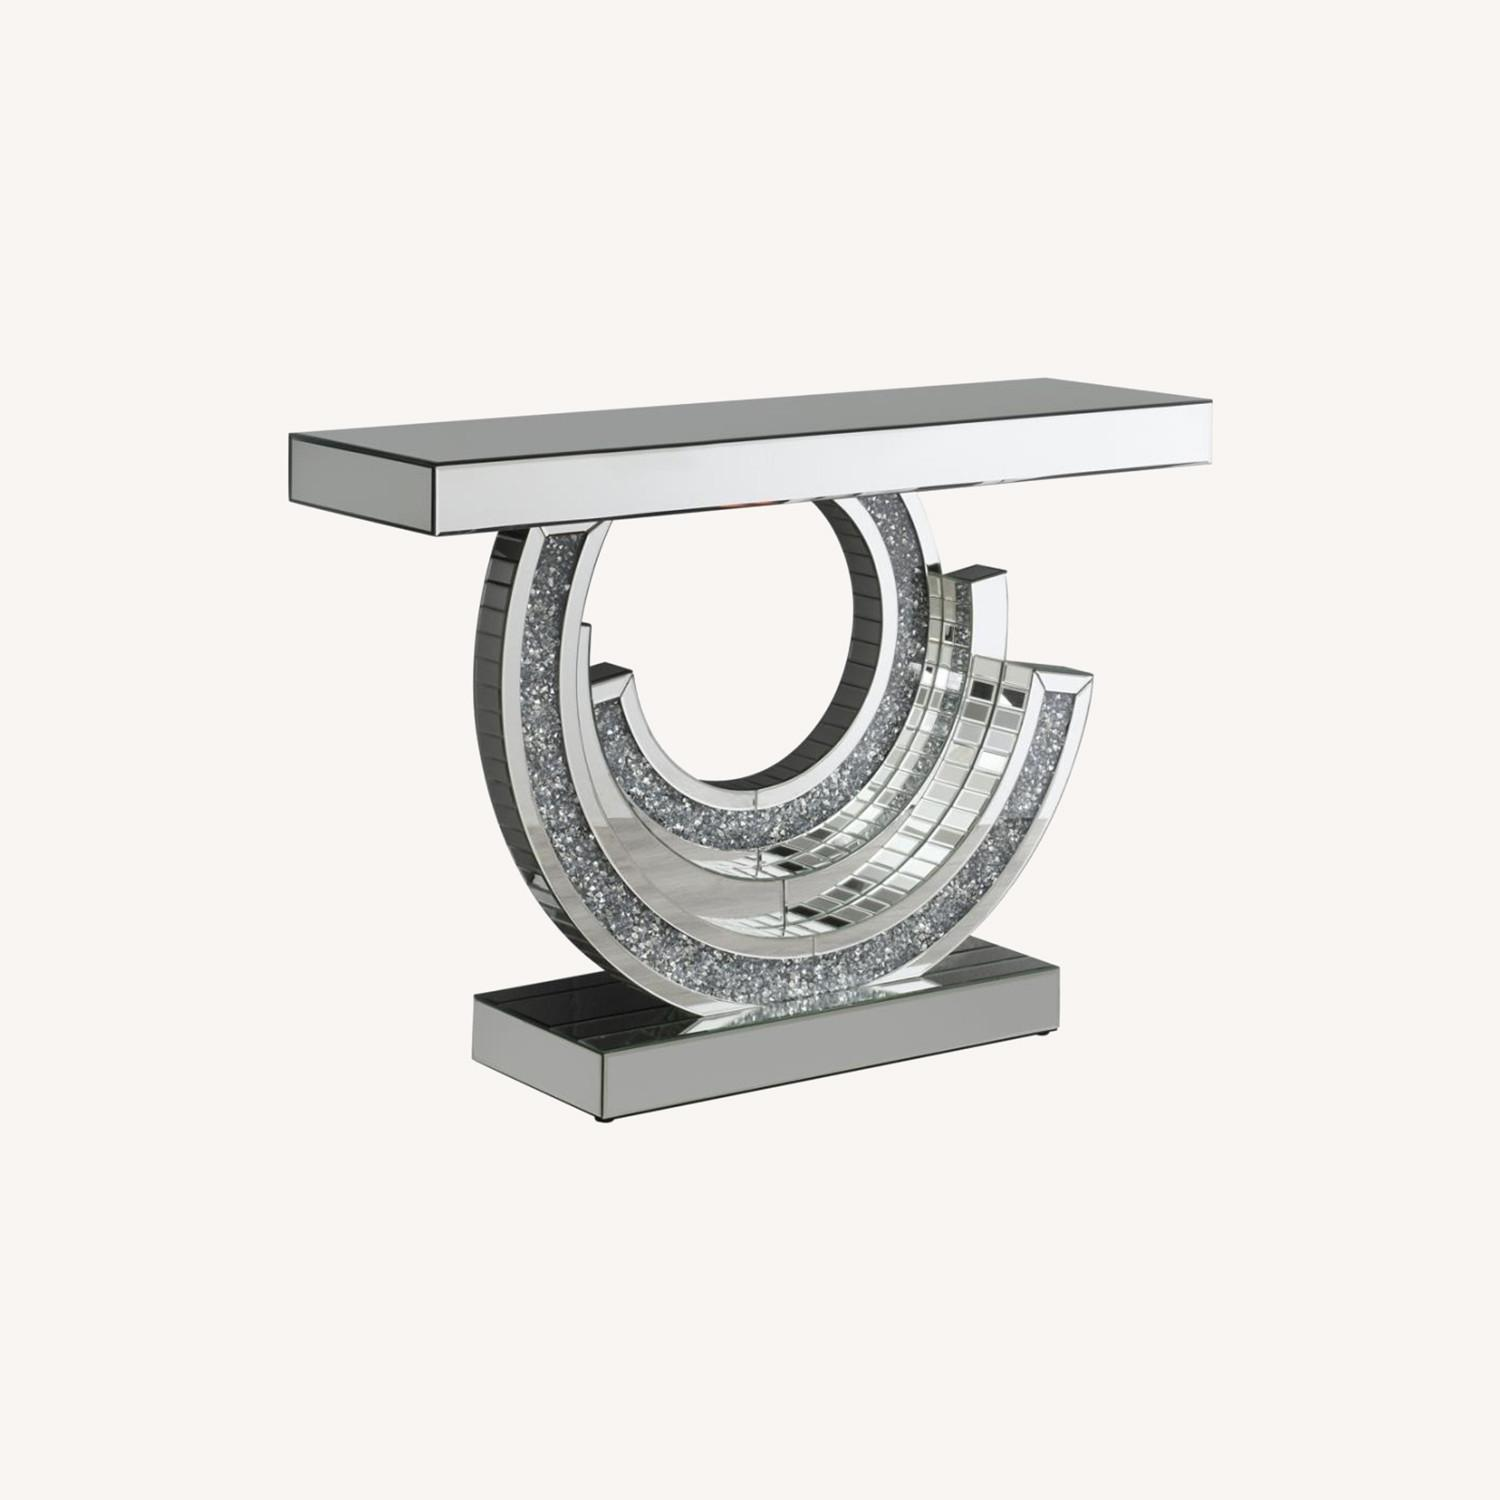 Console Table In Silver W/ Mirrored Table Top - image-4